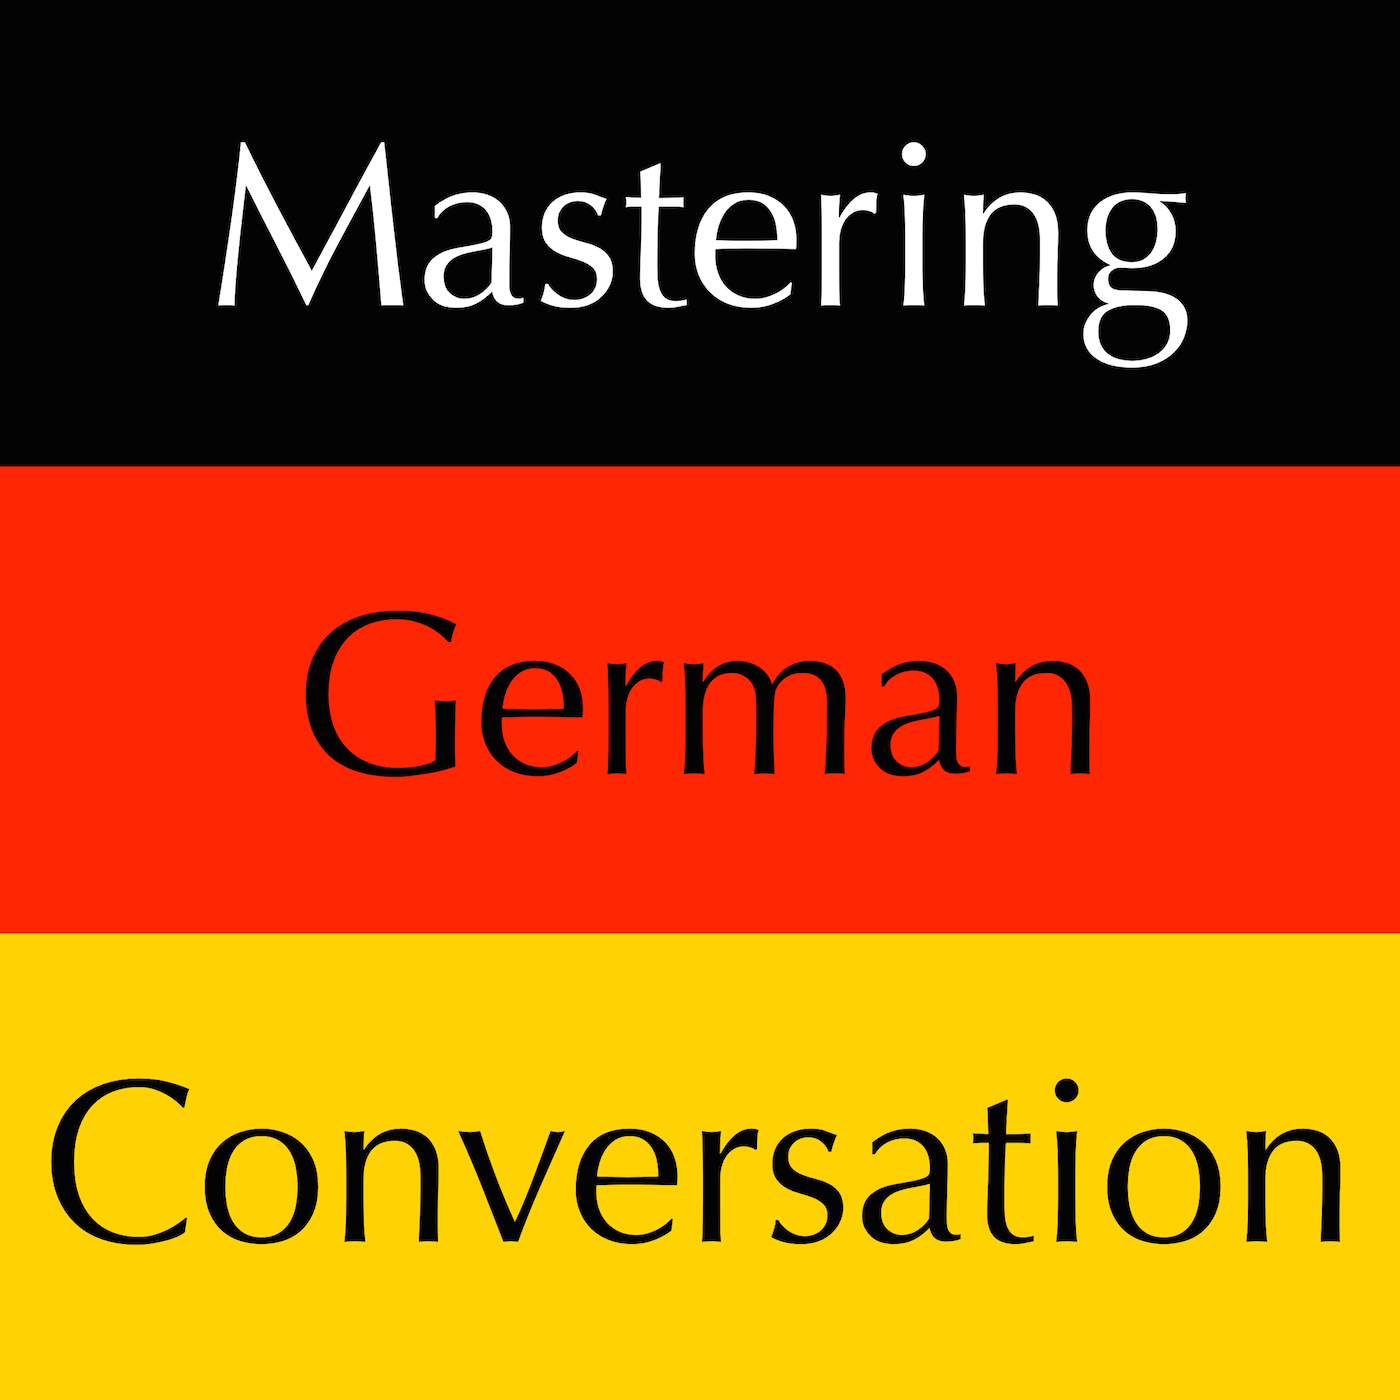 Mastering German Conversation excerpts from Set 2 by Dr. Brians Languages